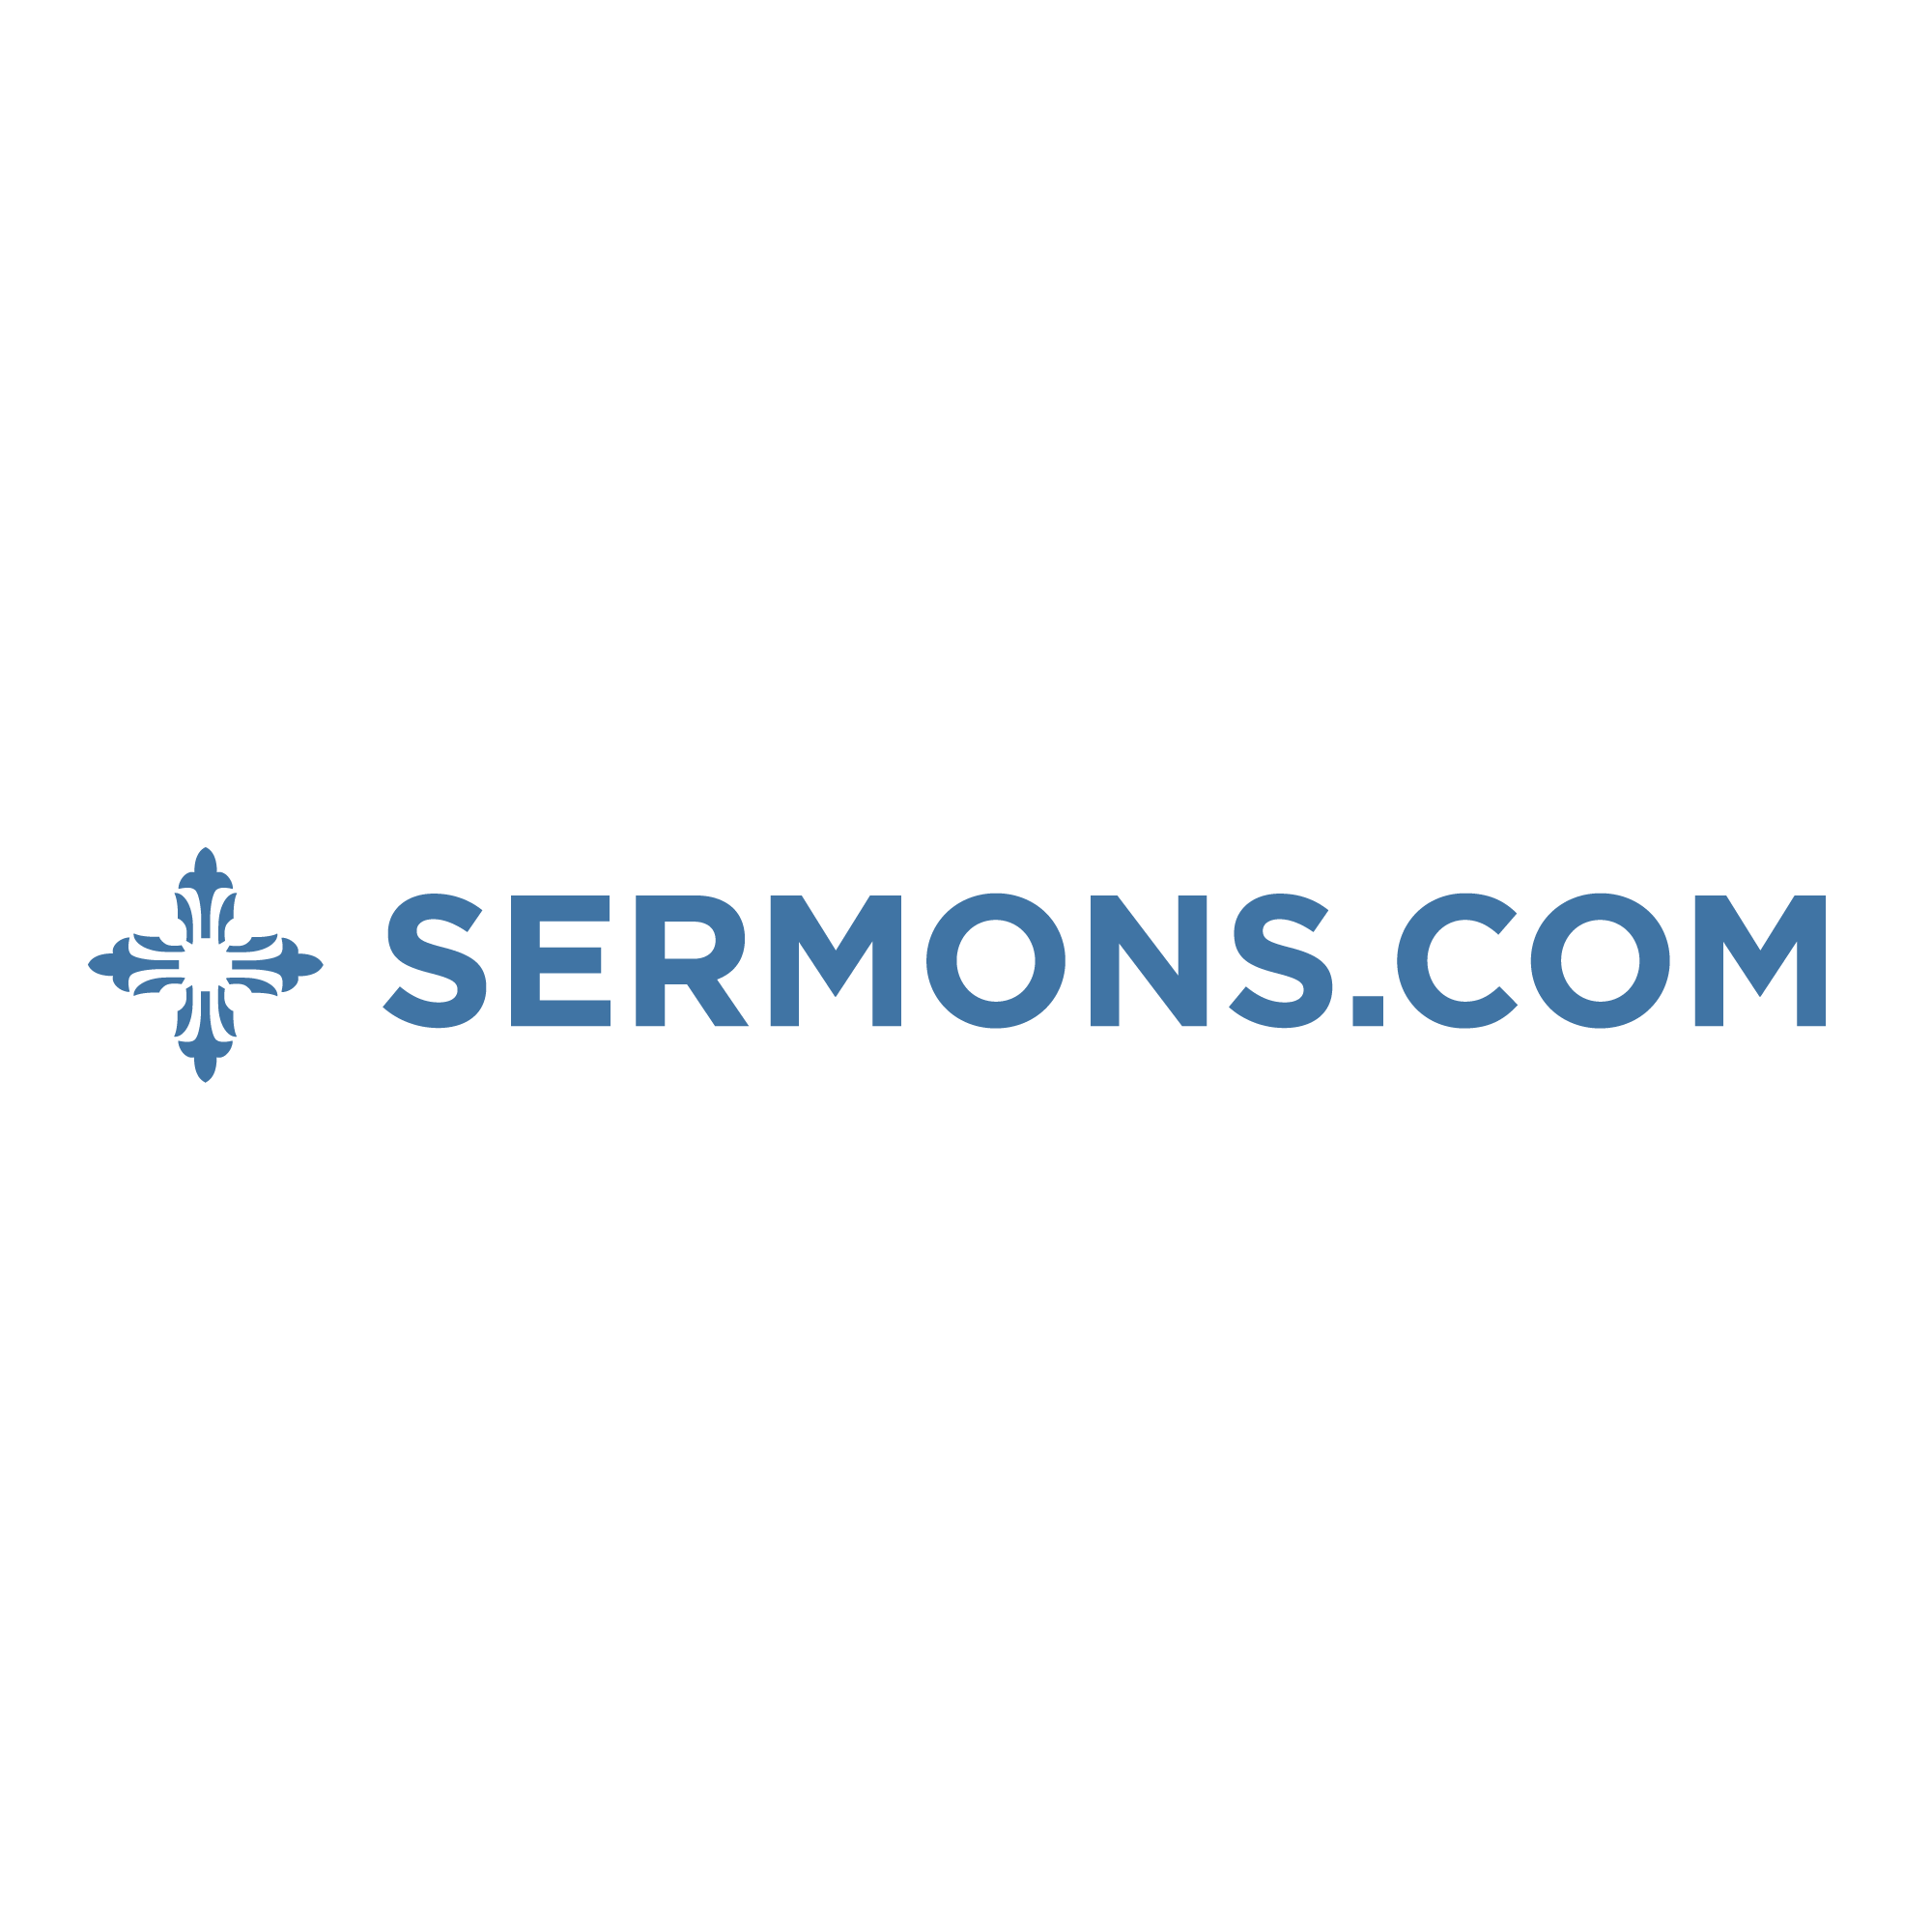 sermons and sermon lectionary resources